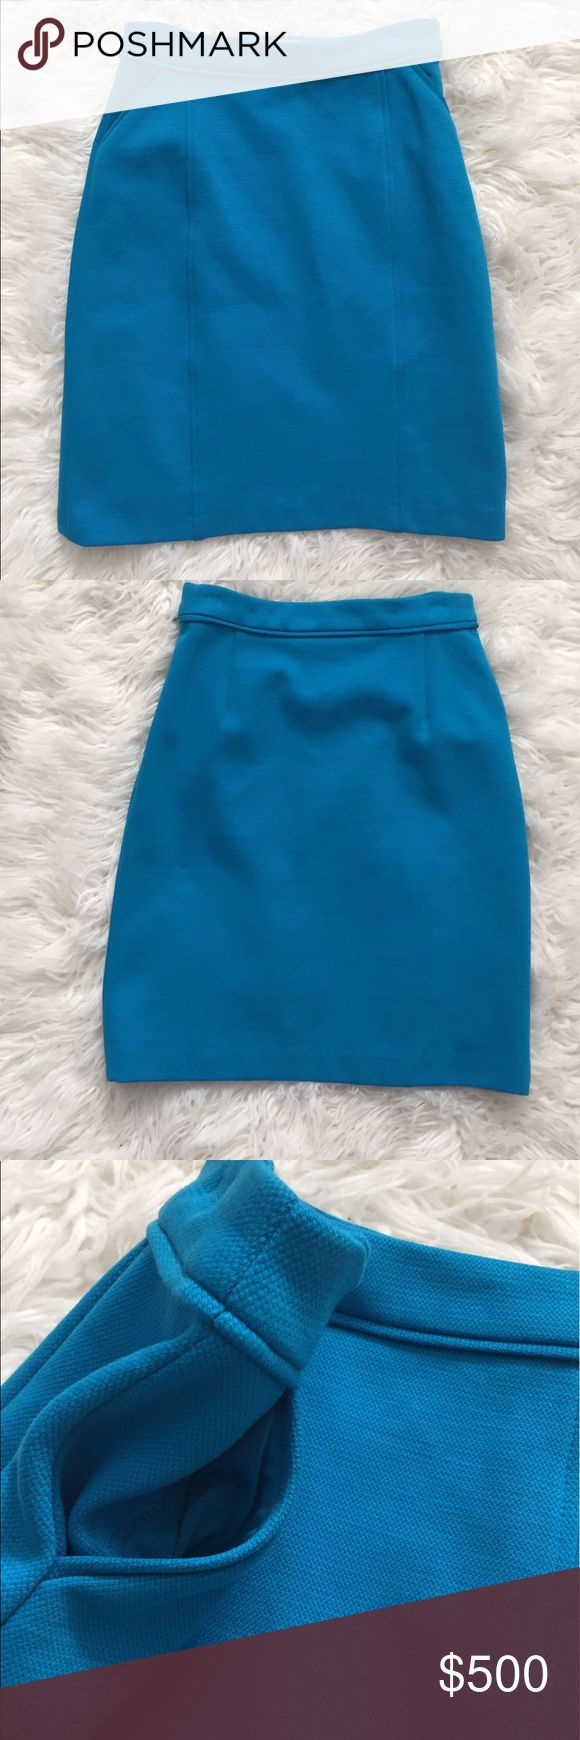 Boden Skirt Worn In Girl Meets World Blue Boden skirt with pockets worn in Girl Meets World. Has a small hole in the back from a pin. Has hanger marks at the top. I do not have a certificate of authenticity but I can provide the production wardrobe tag with the show code. ❤️ #5271703 Boden Skirts